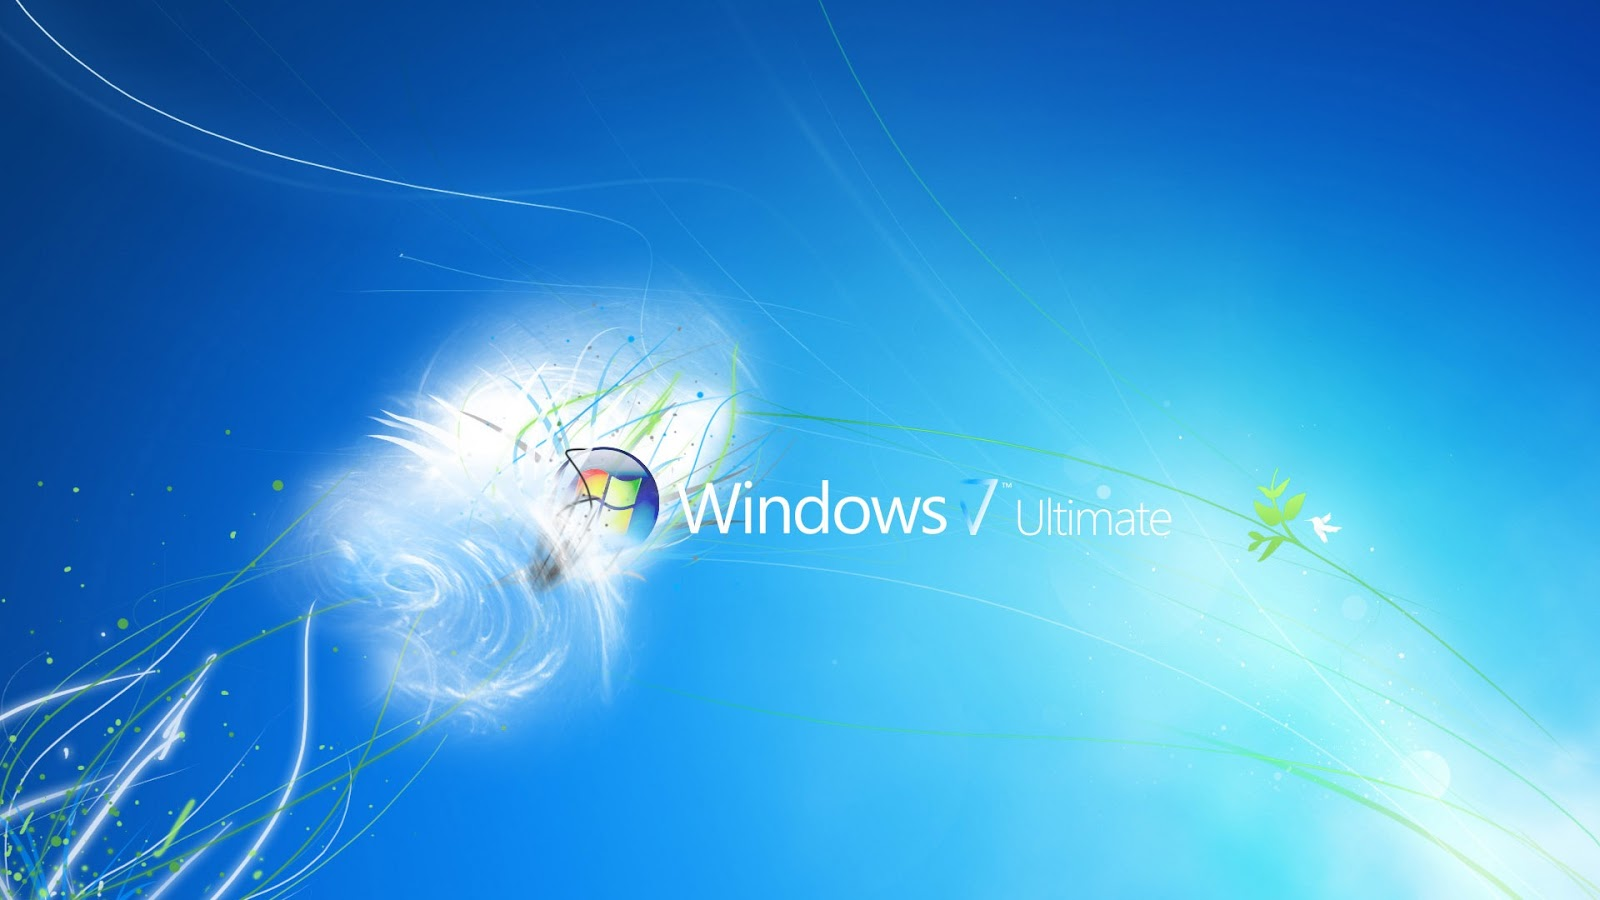 Wallpapers hd 73 wallpapers full hd variados windows 7 for Pagina de wallpapers hd